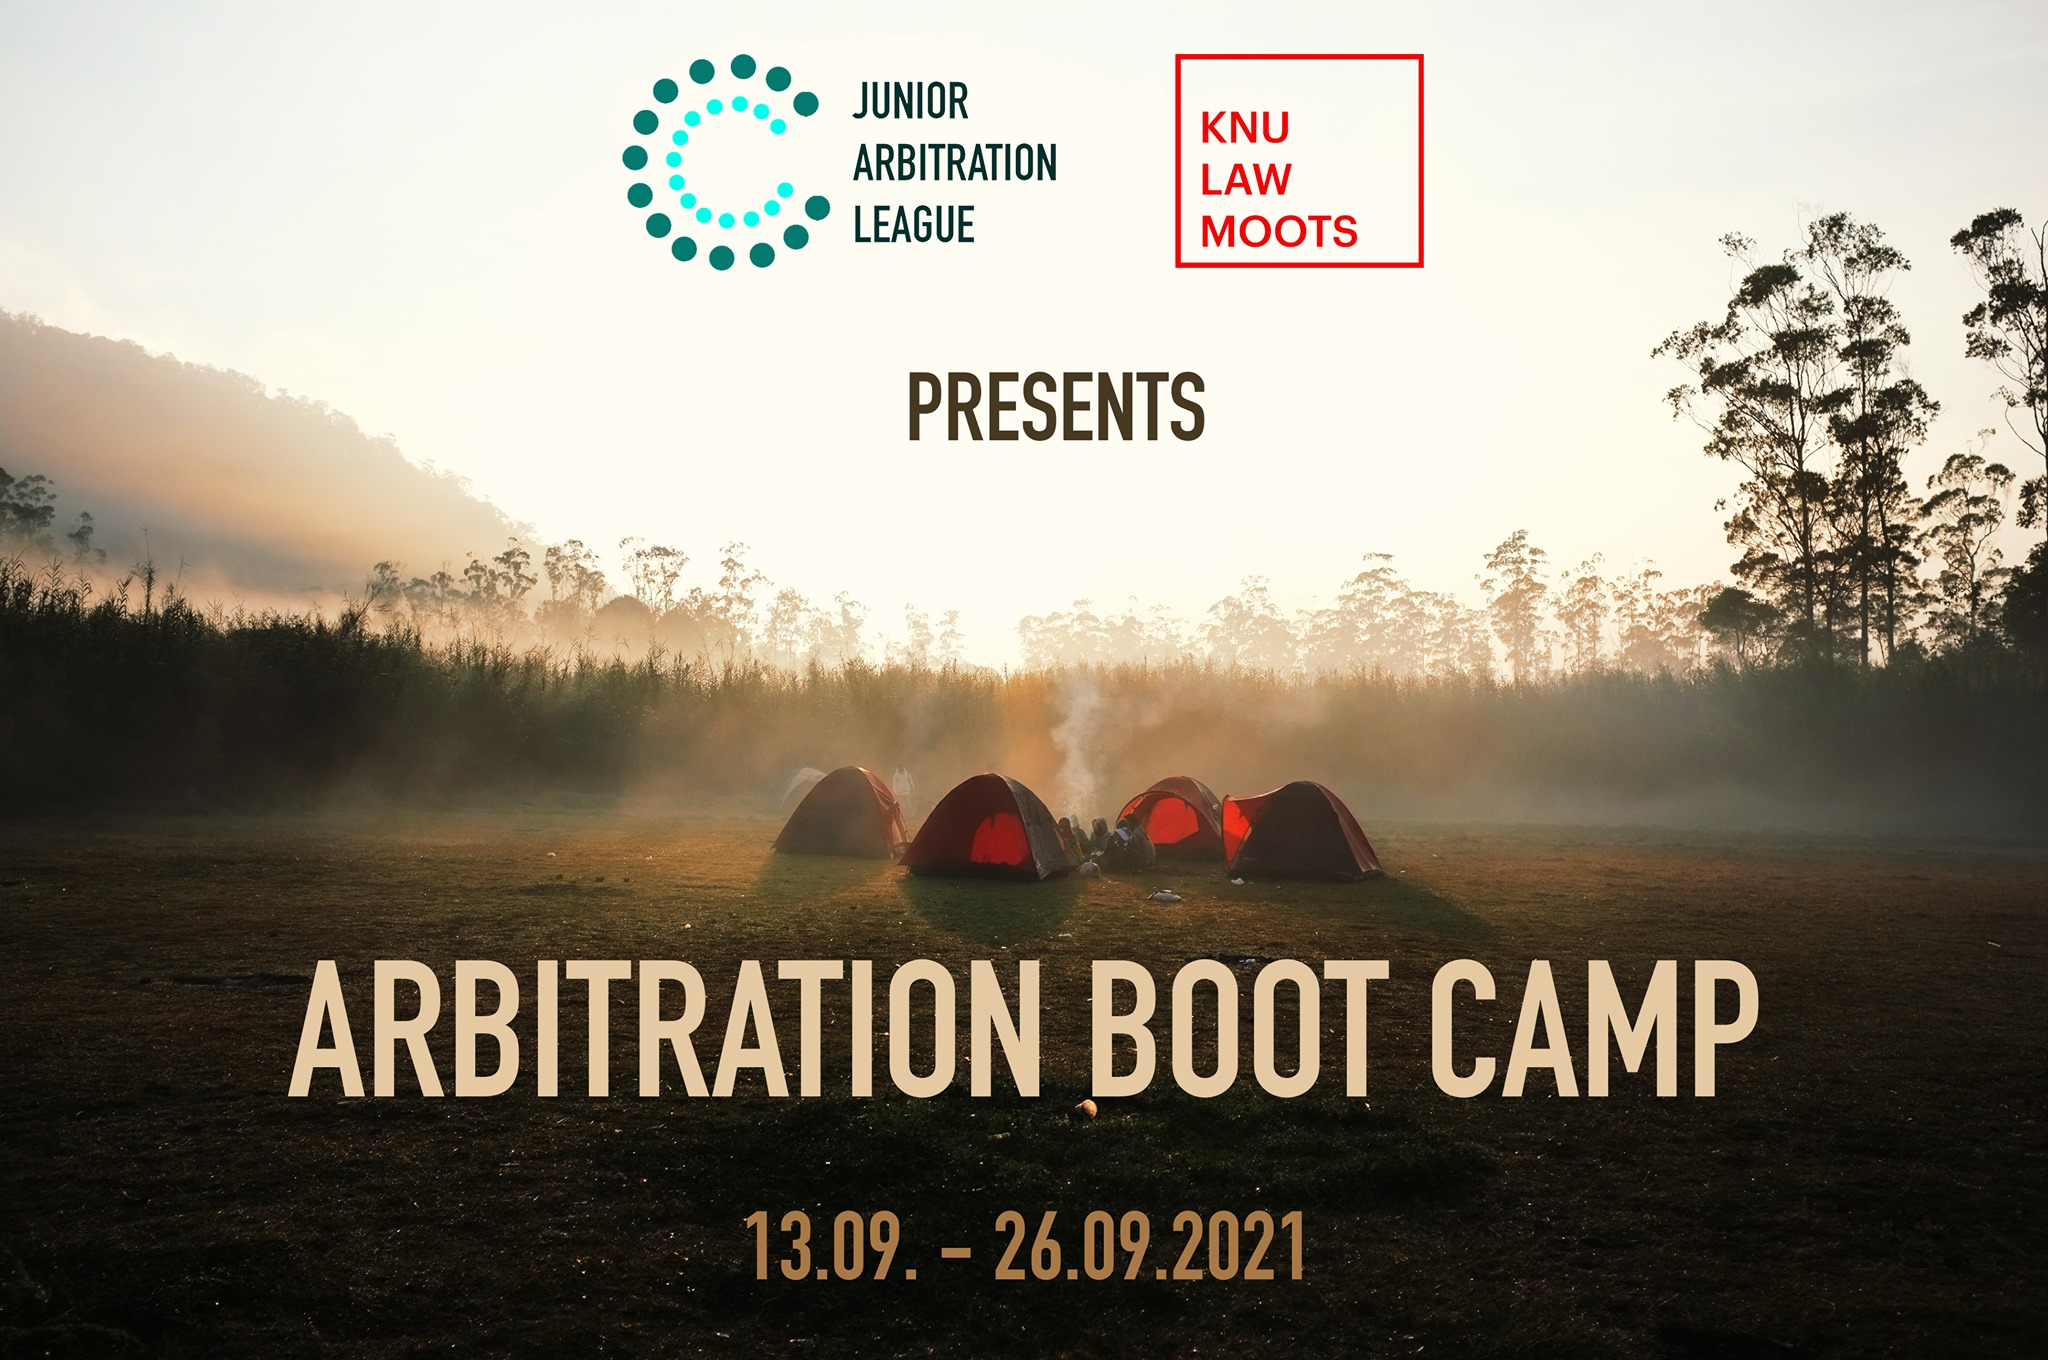 Arbitration Boot Camp